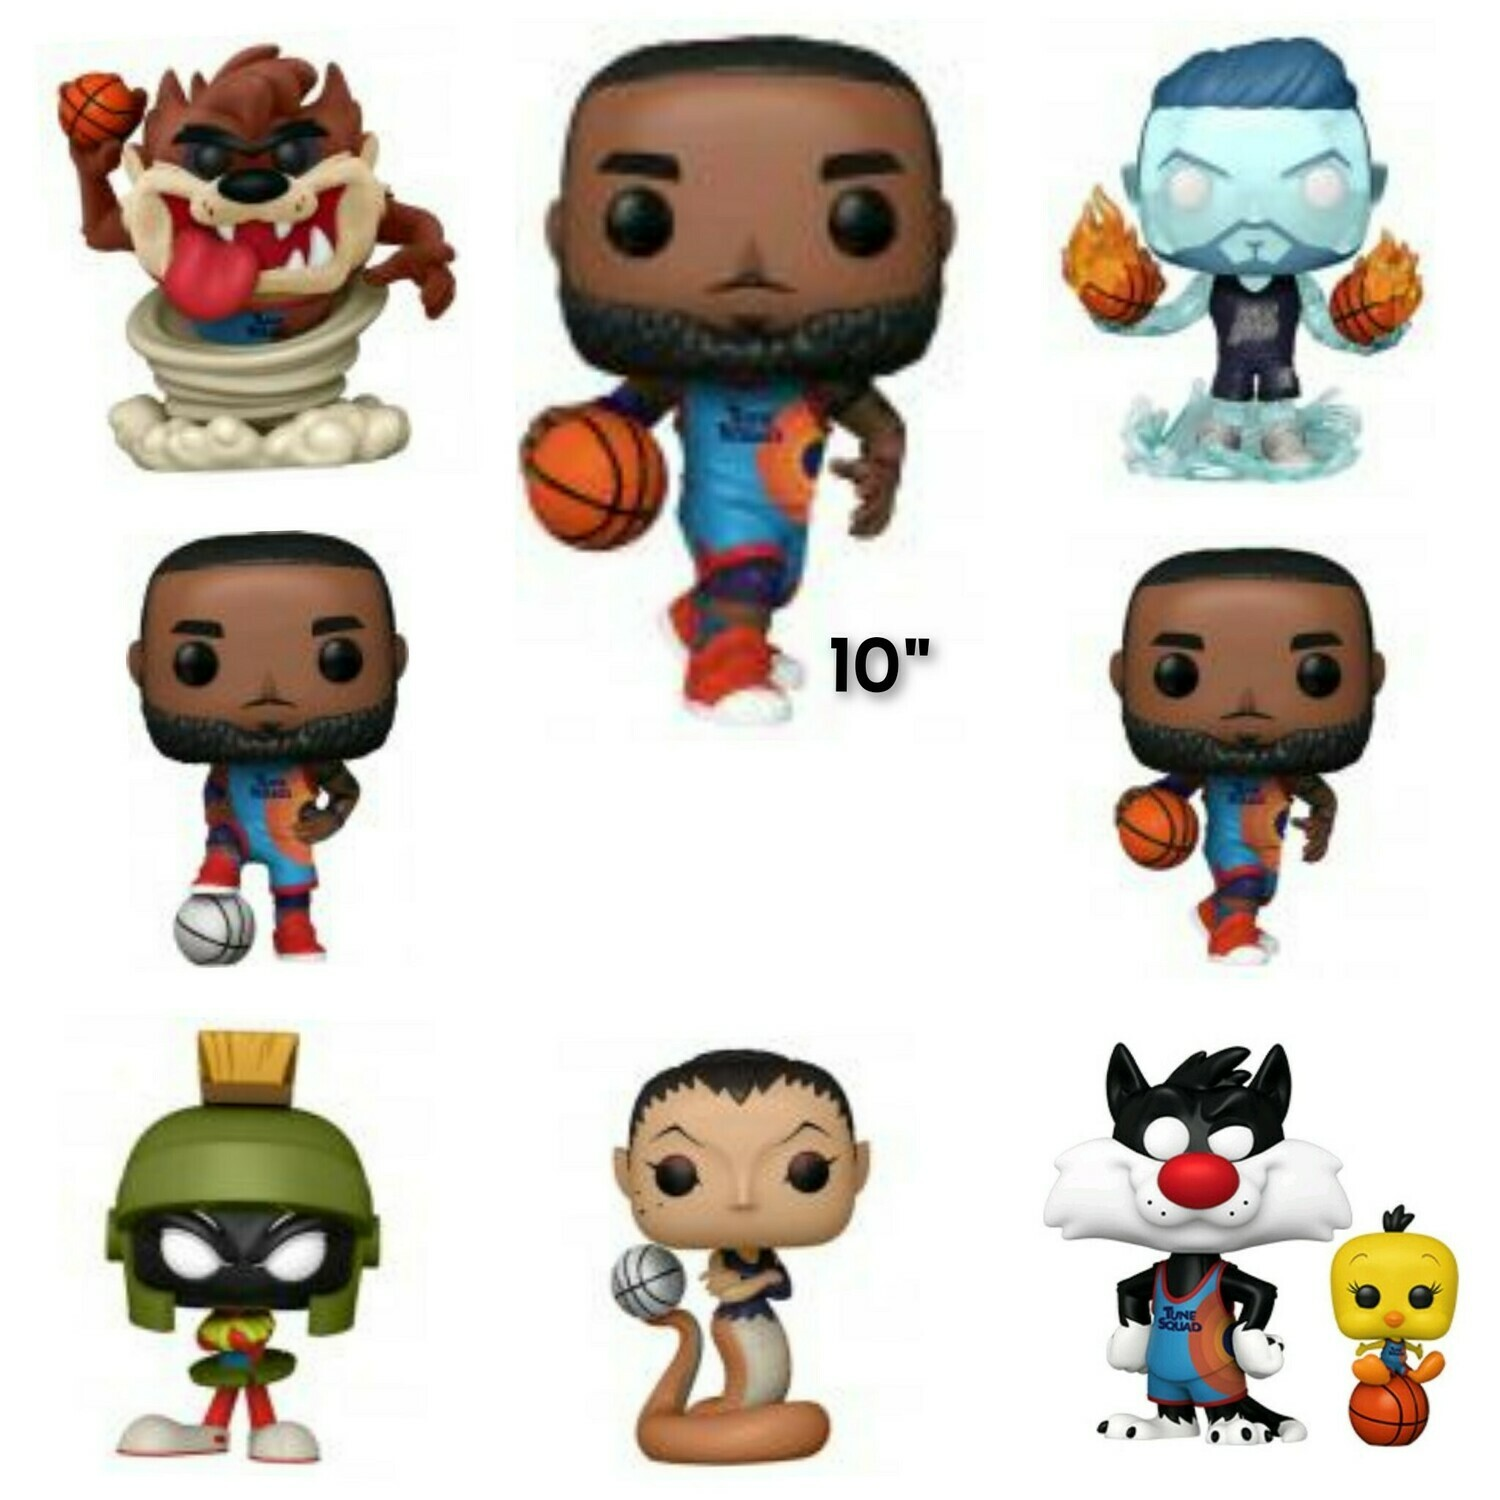 Pre-Order: Space Jam 2: A New Legacy Pop! Vinyl Figure